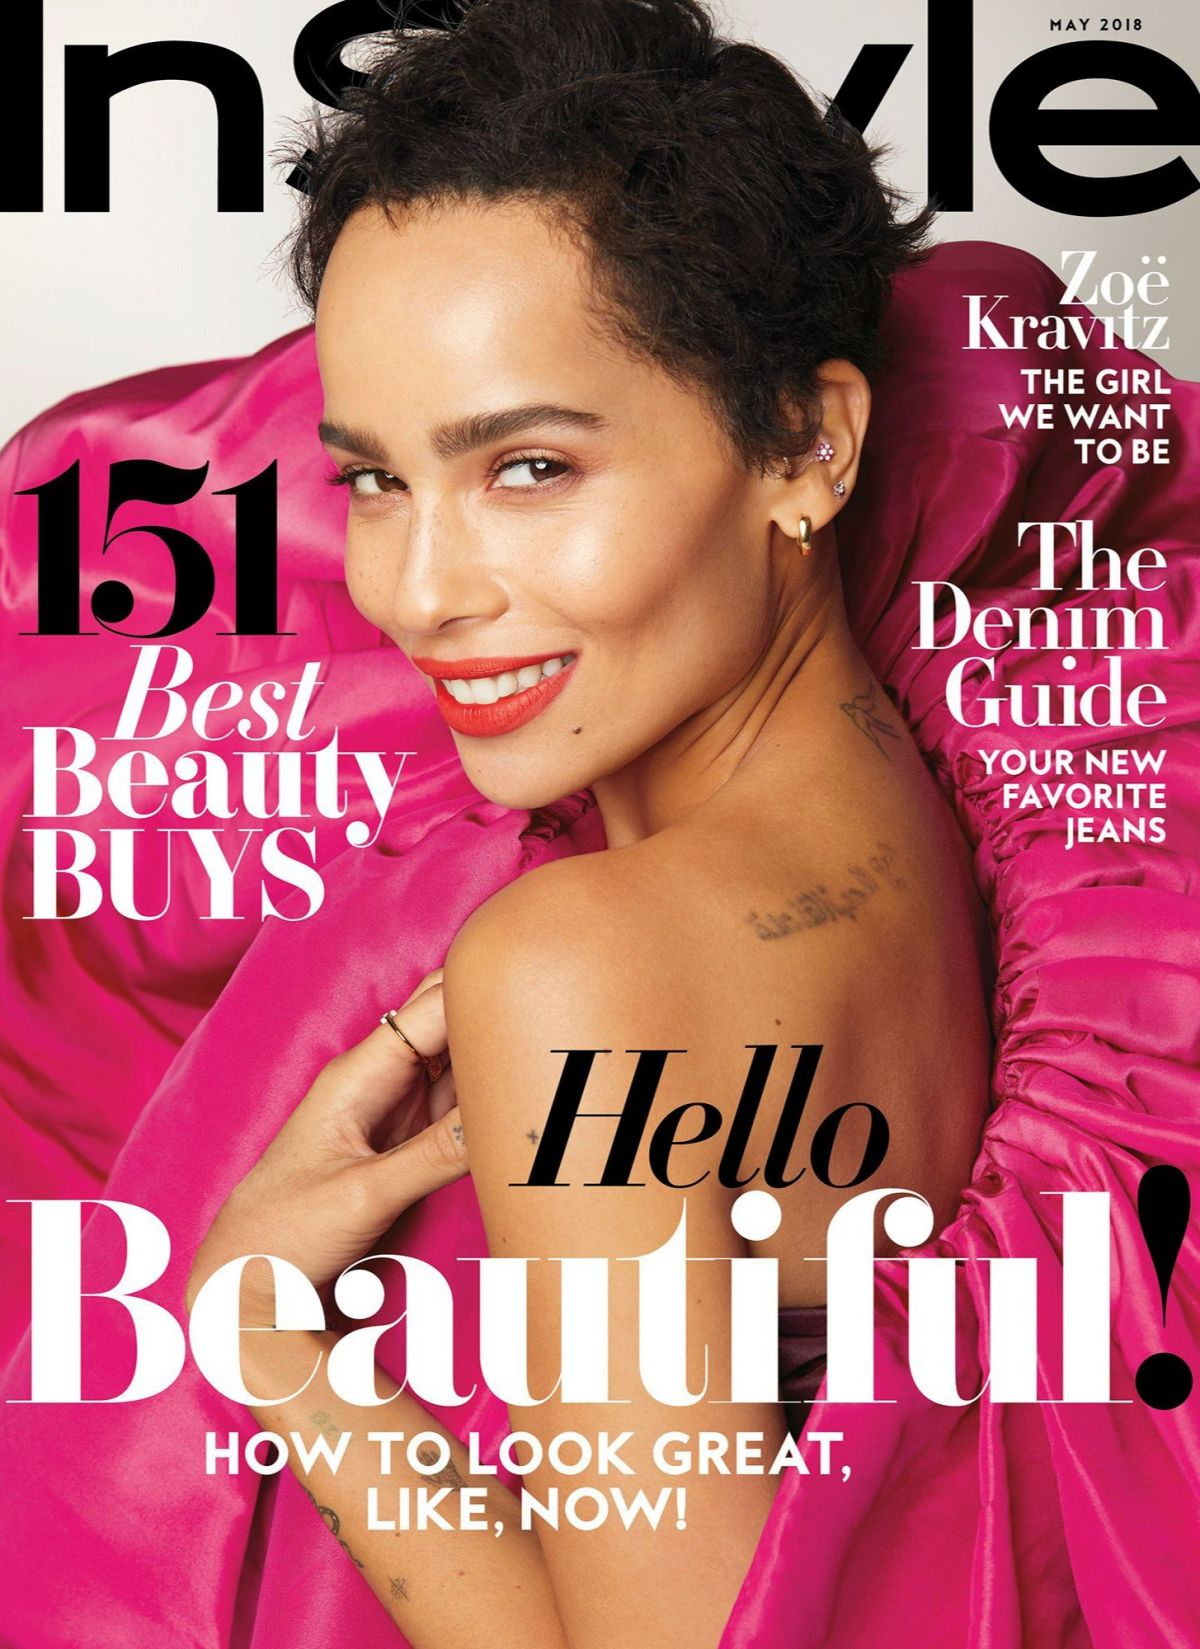 Instyle Magazine Us: ZOE KRAVITZ In Instyle Magazine, May 2018